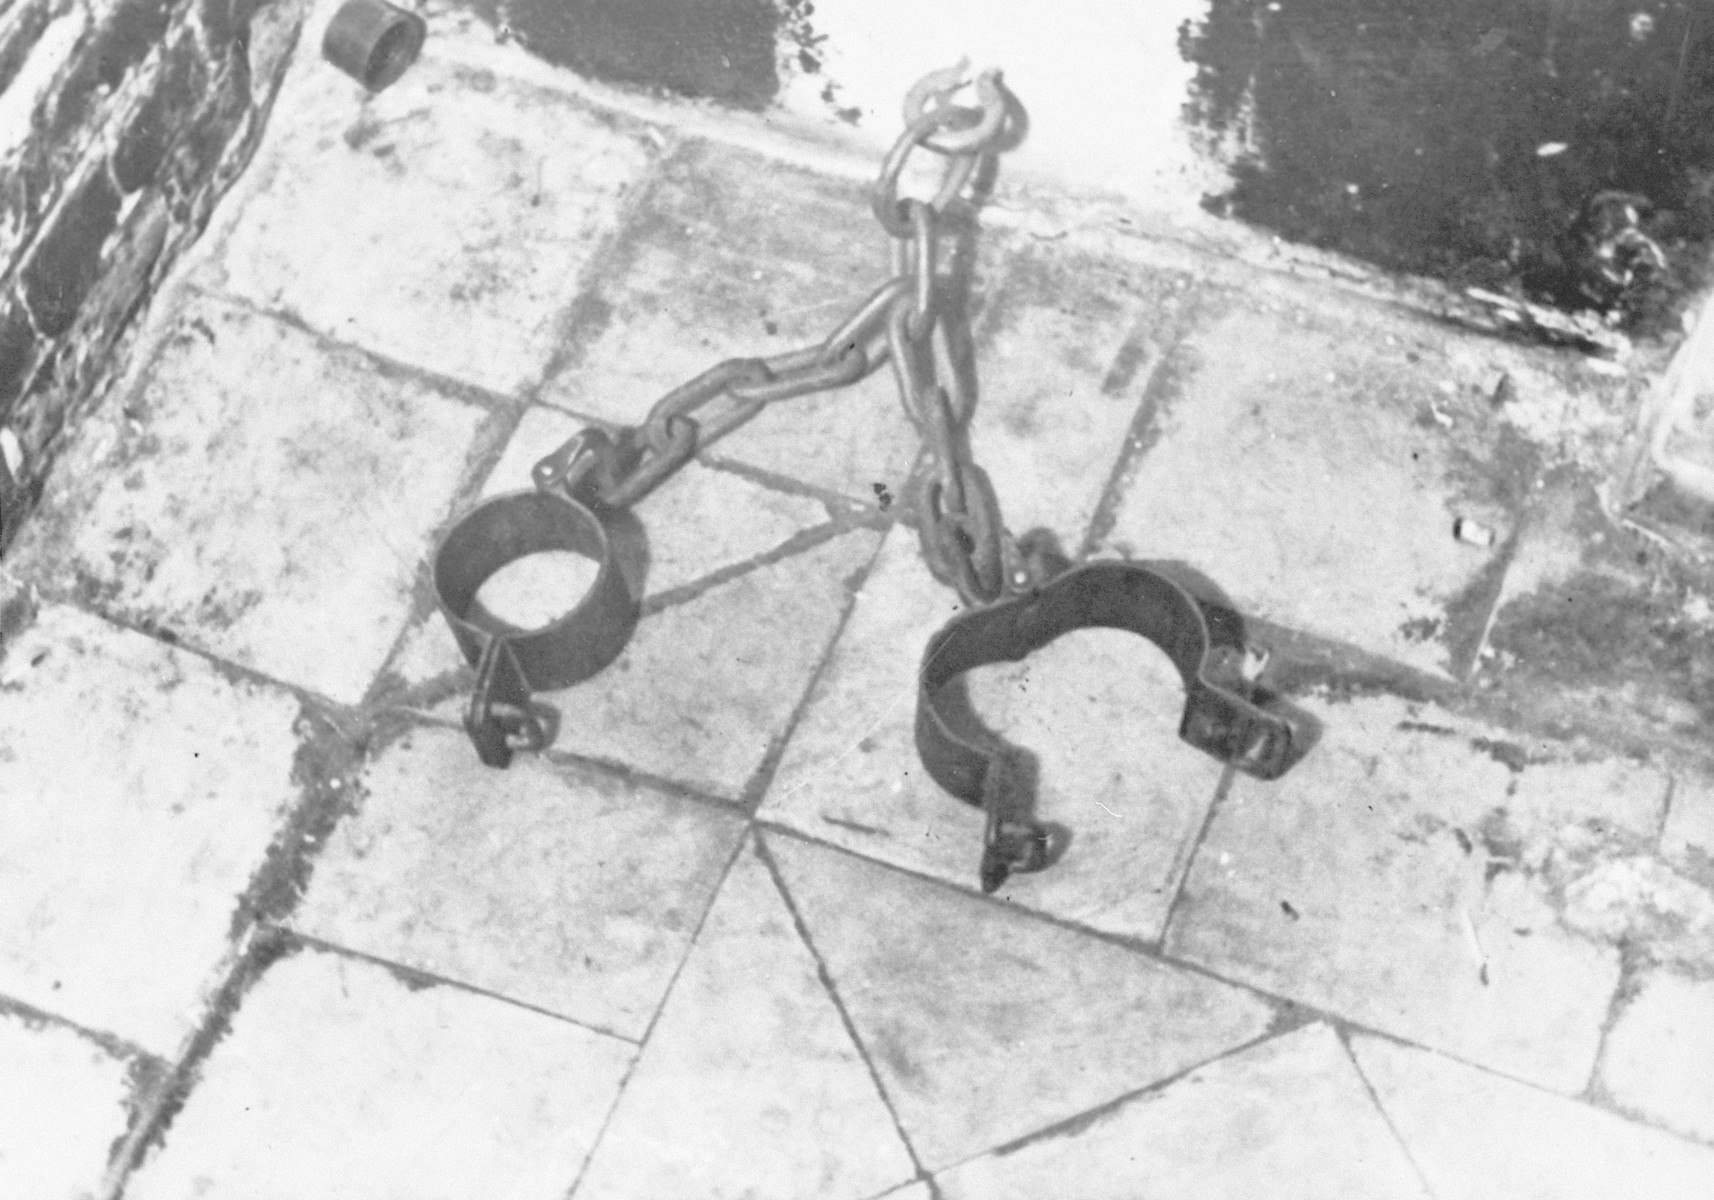 Legs irons used in a cell of the Breendonck concentration camp.